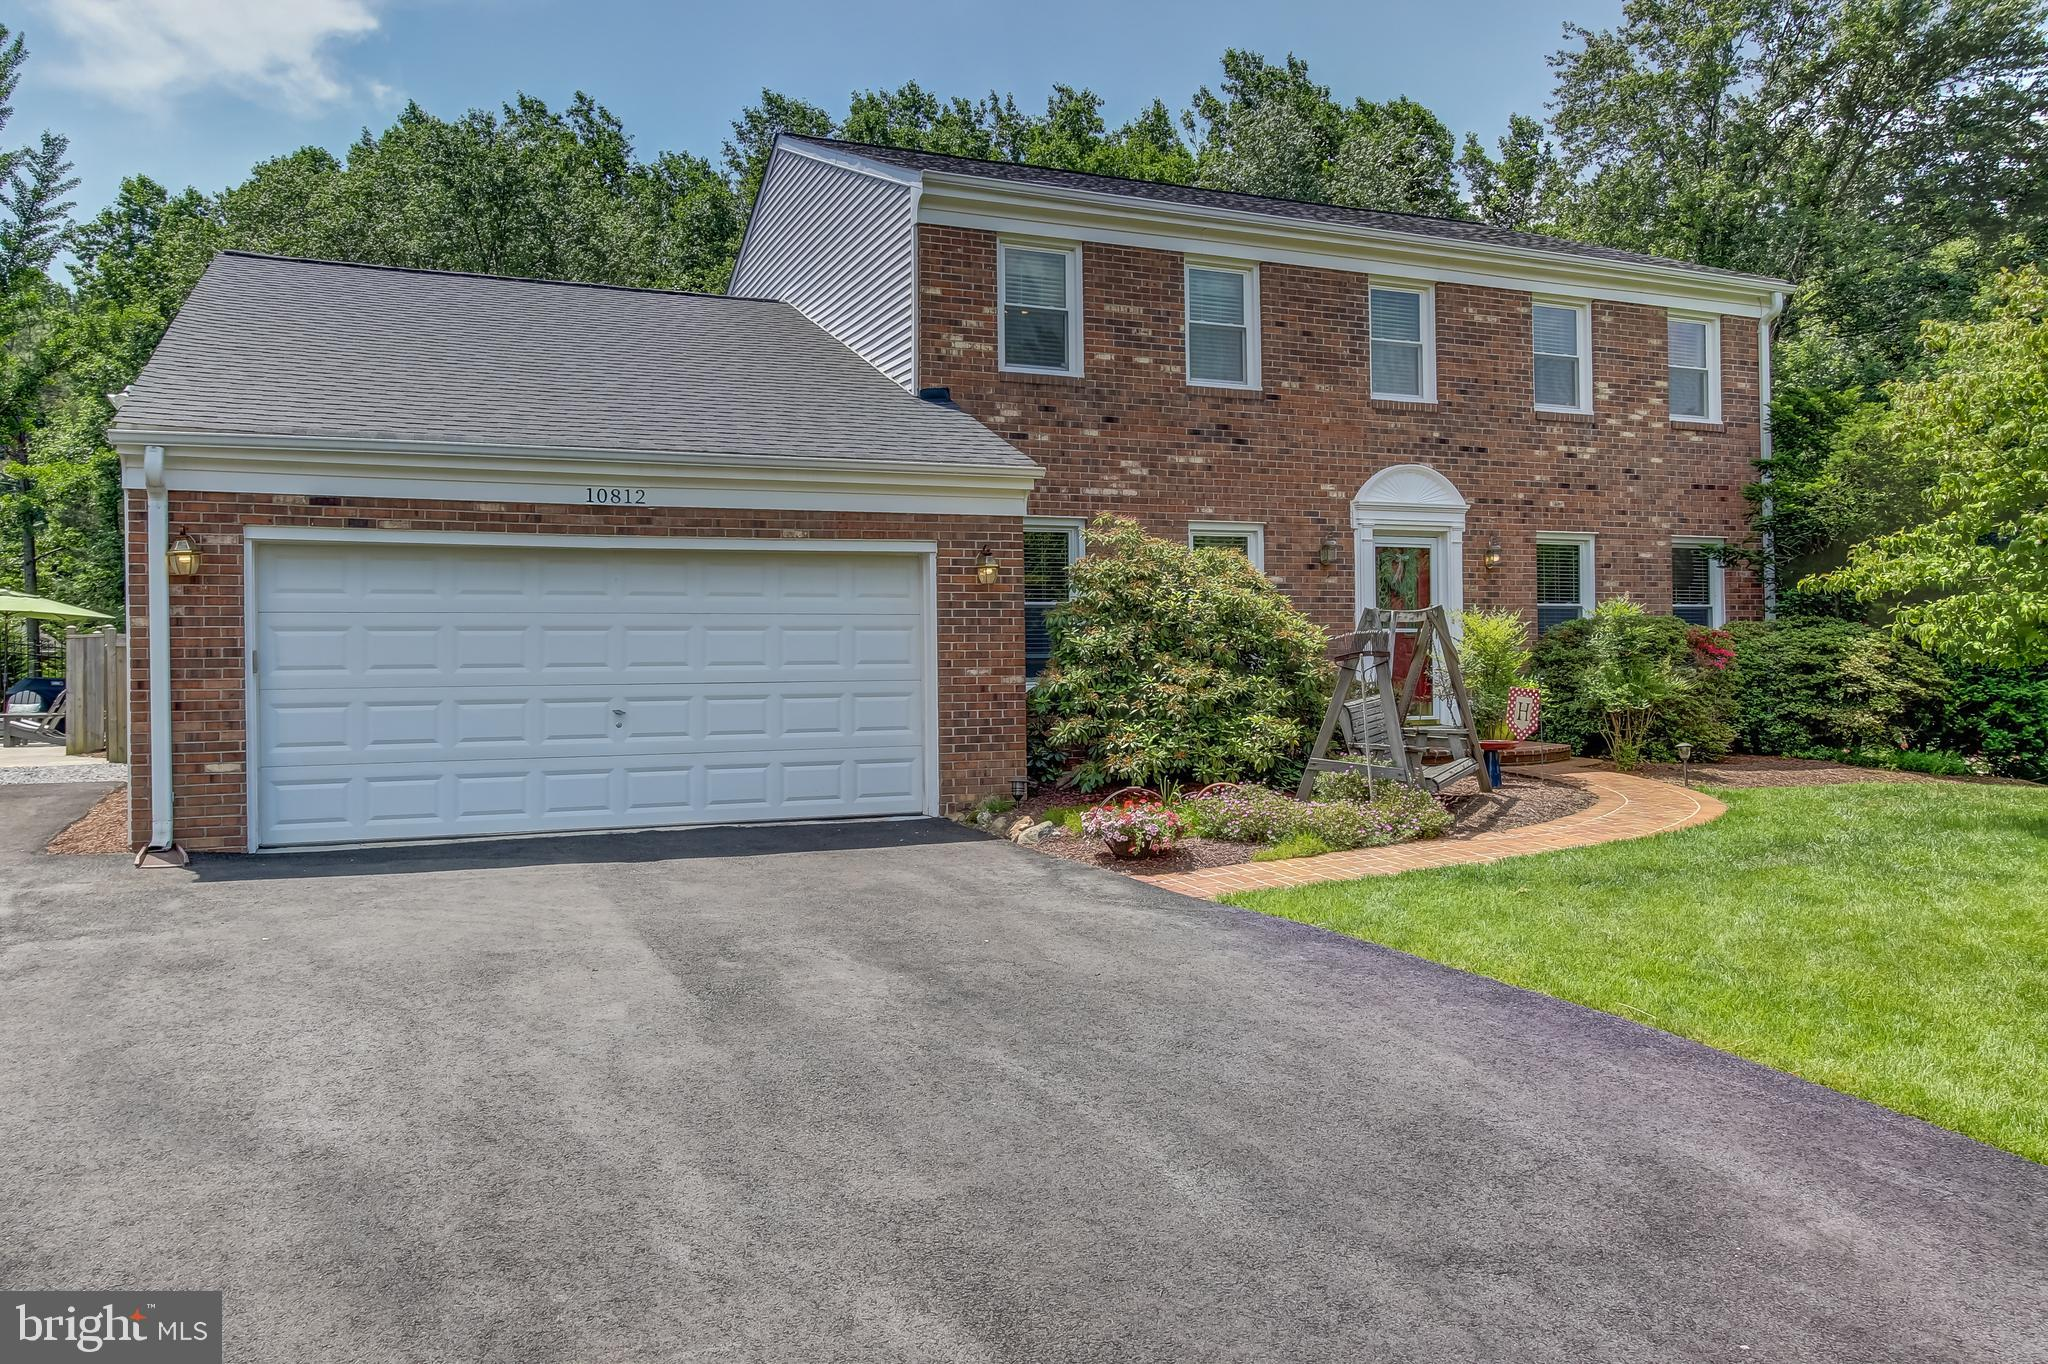 10812 MIDDLEBORO DRIVE, DAMASCUS, MD 20872